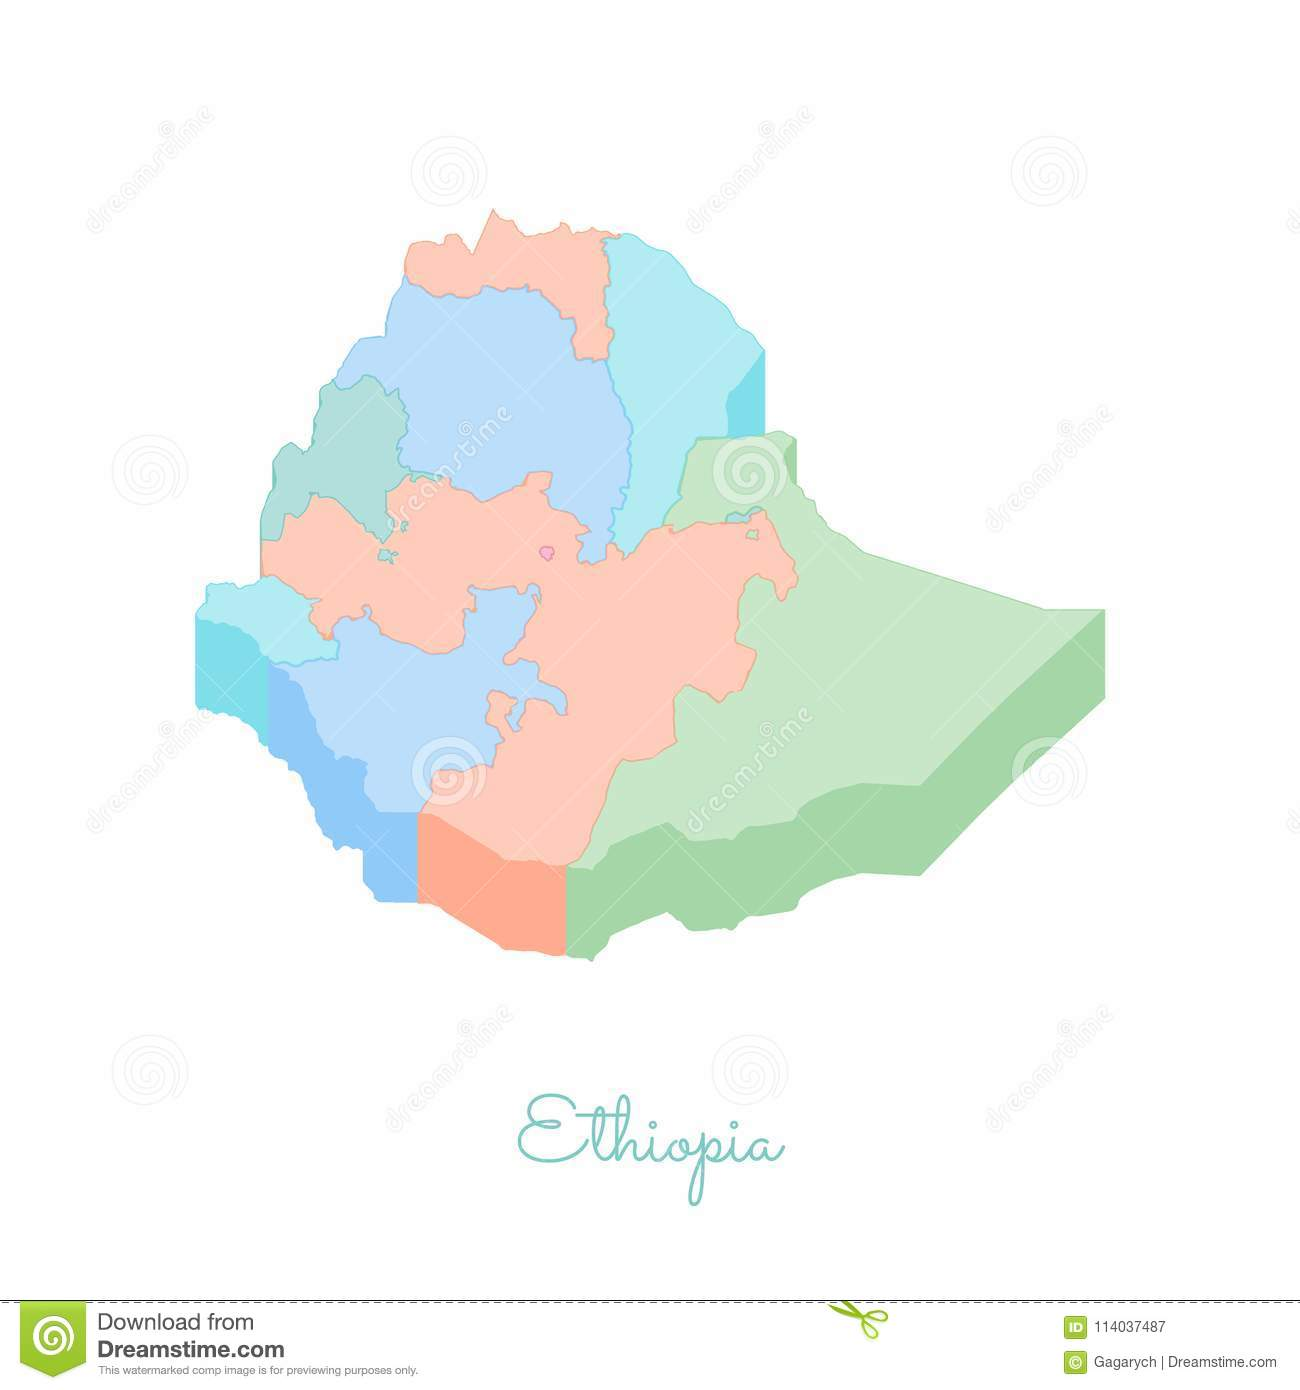 Ethiopia Region Map: Colorful Isometric Top View  Stock